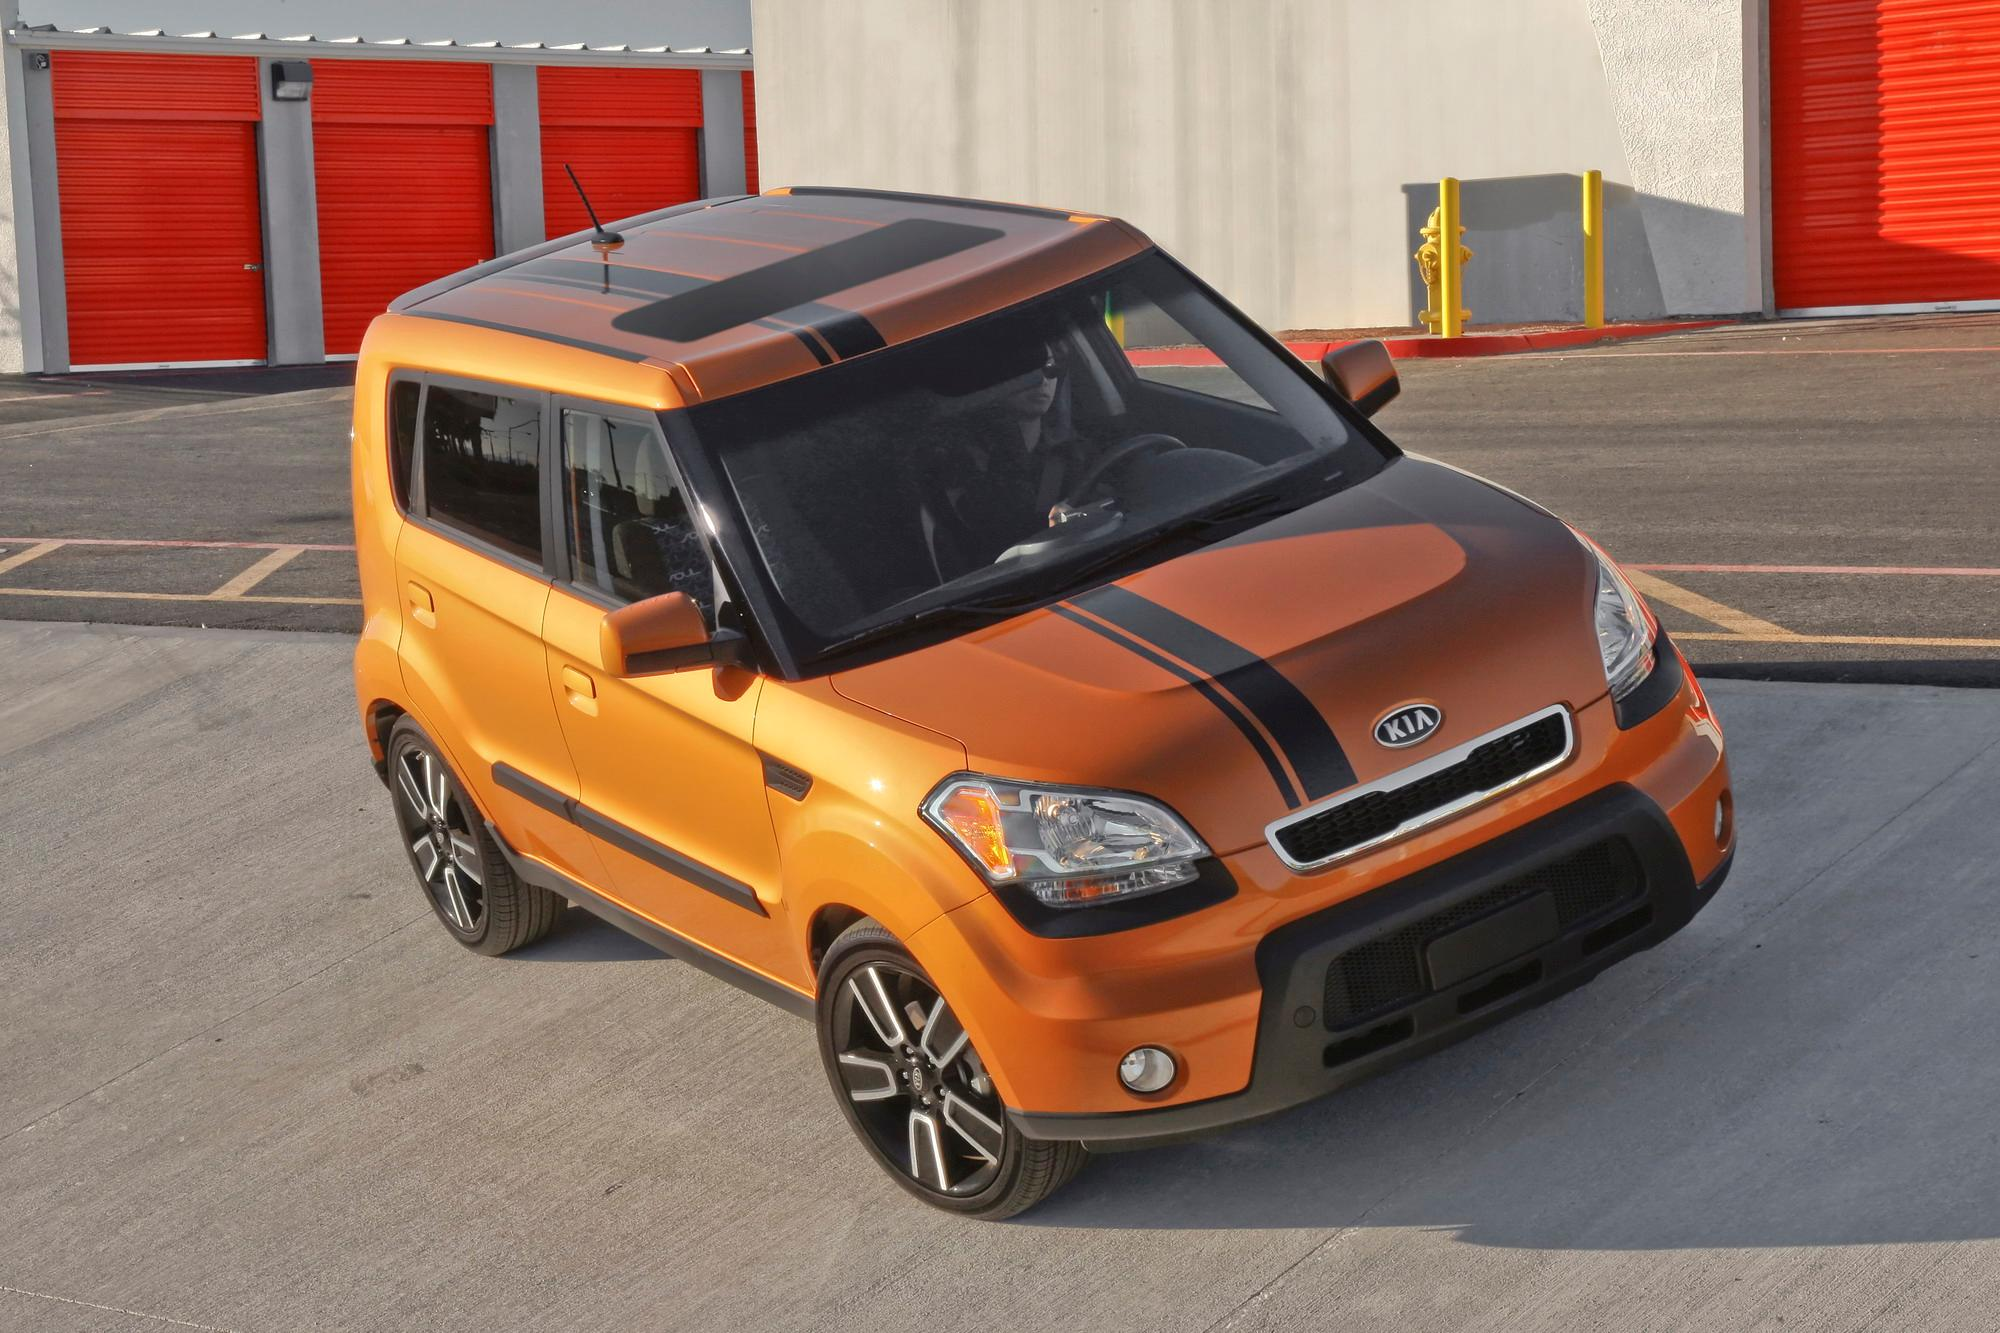 2010 kia ignition soul review top speed. Black Bedroom Furniture Sets. Home Design Ideas